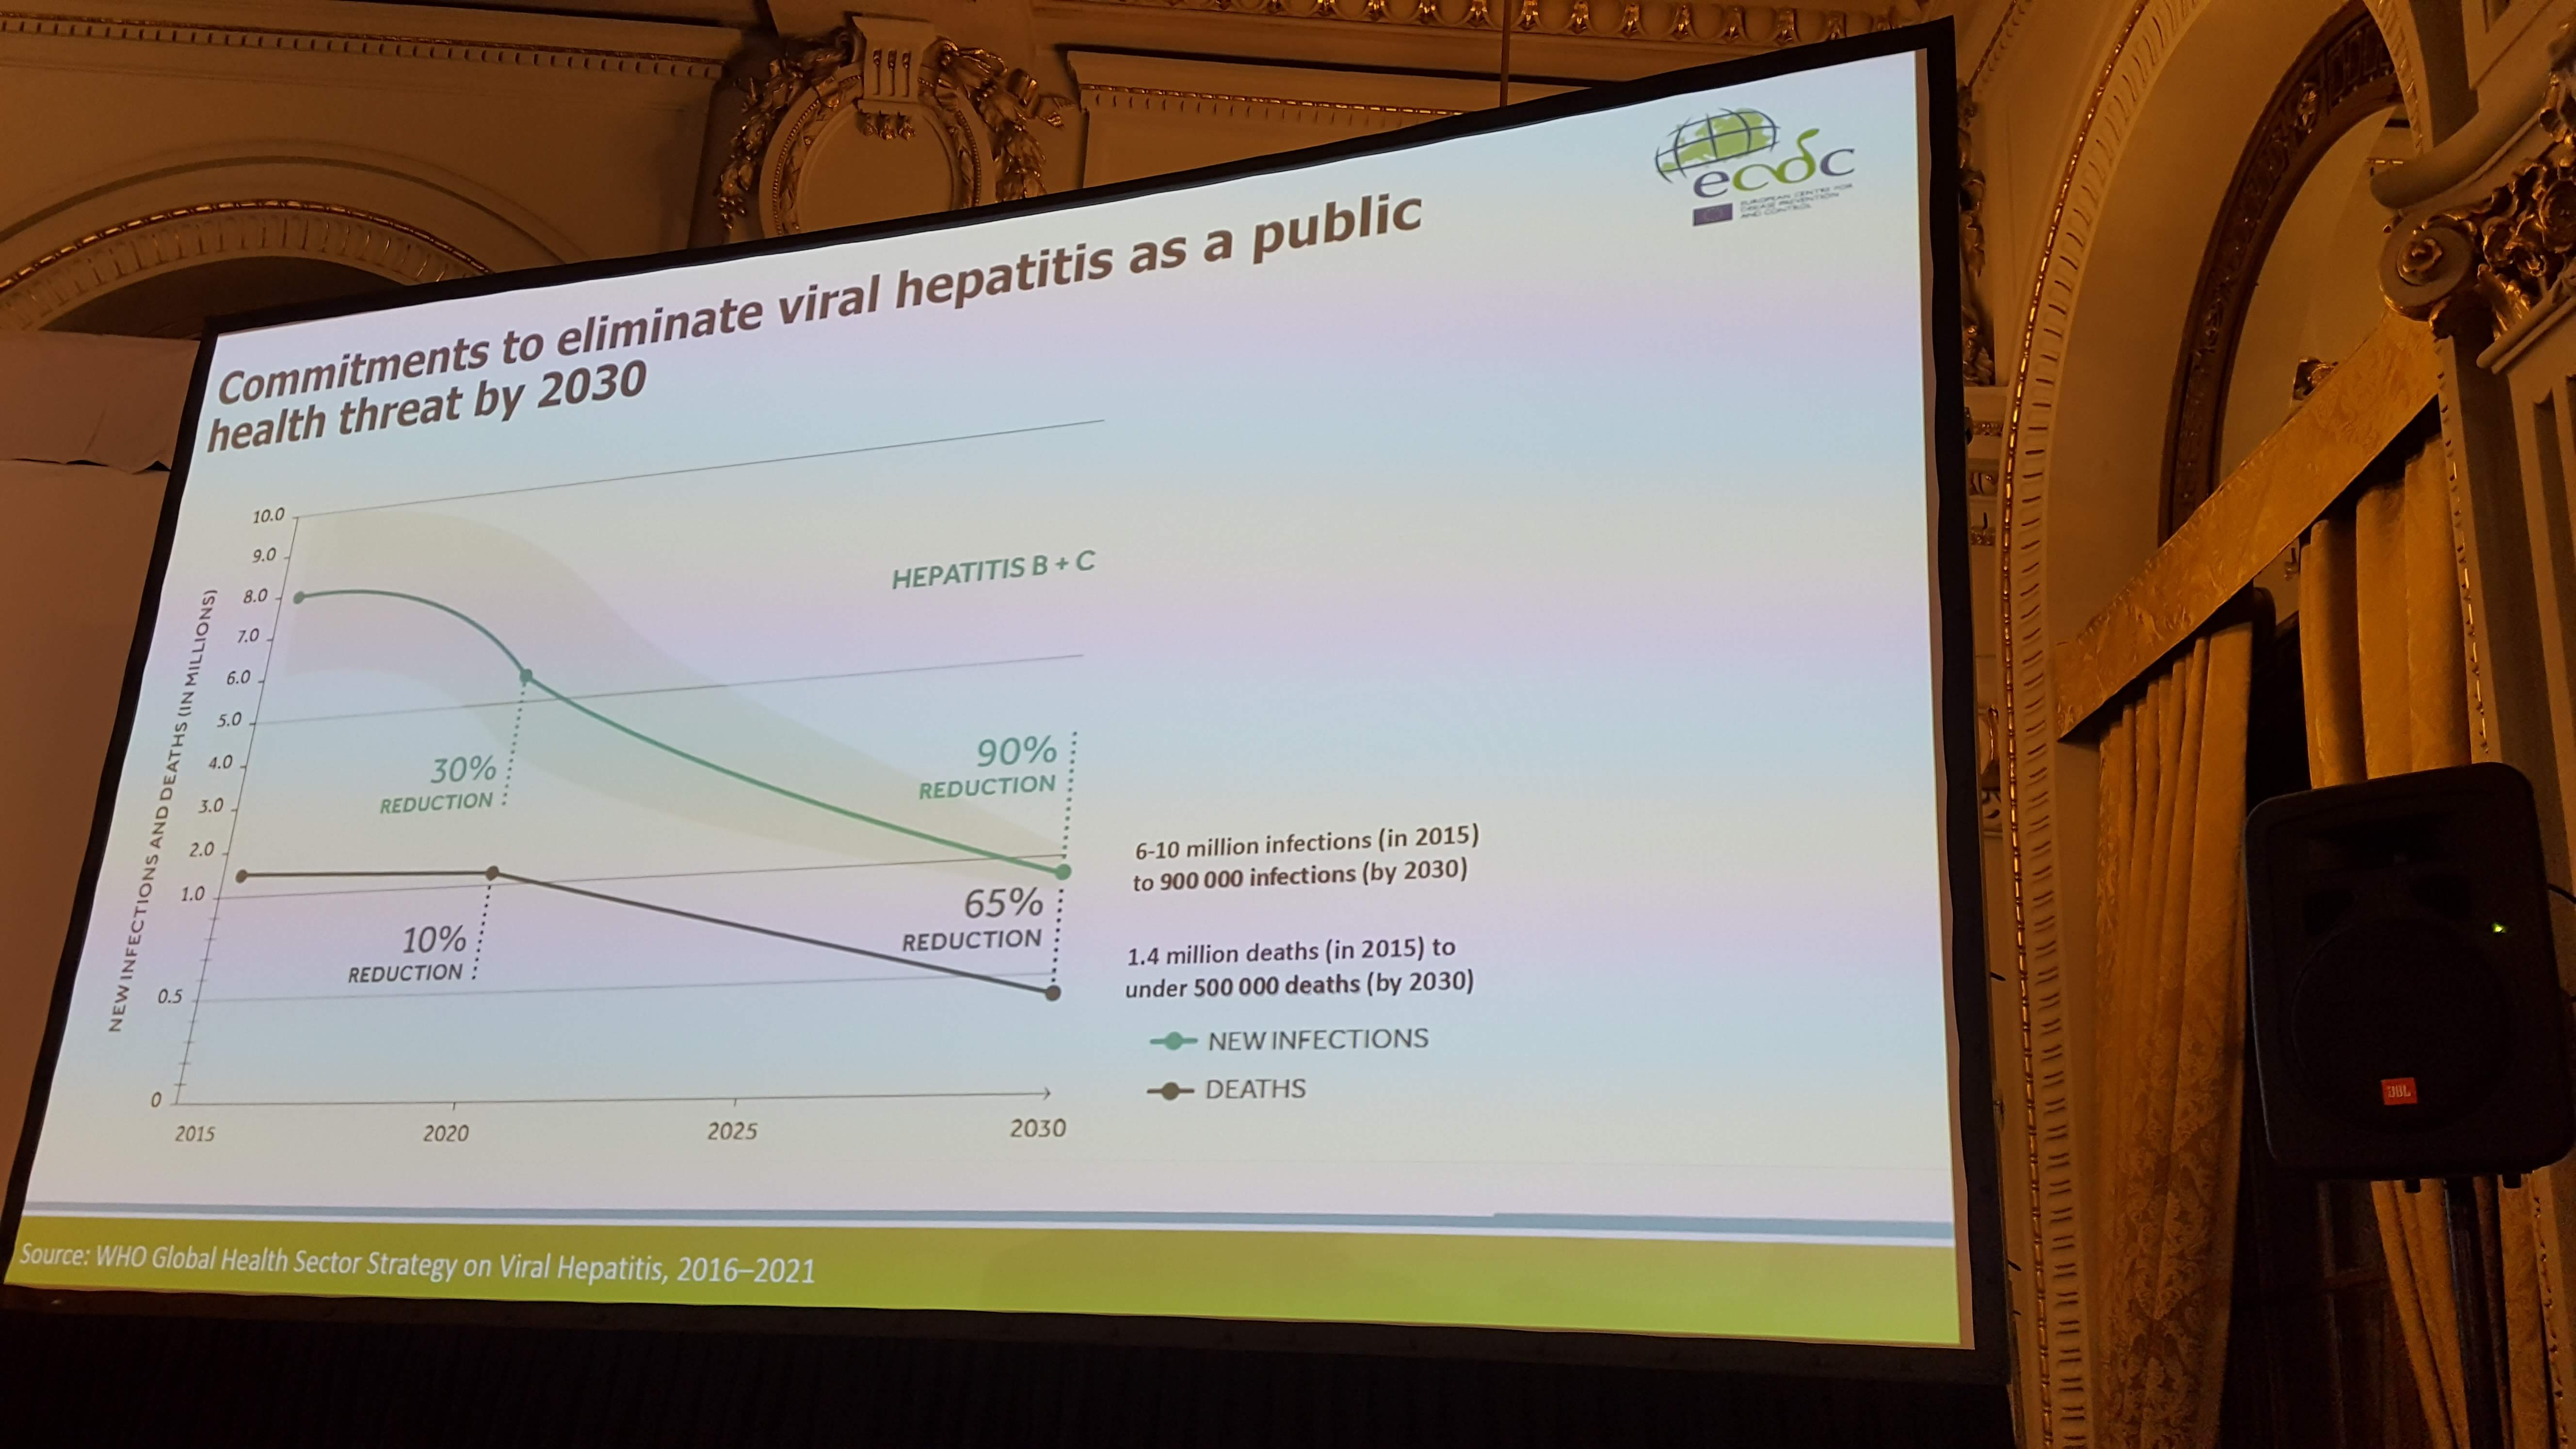 Commitments to eliminate viral hepatitis as a public health threat by 2030, ECDC 2019